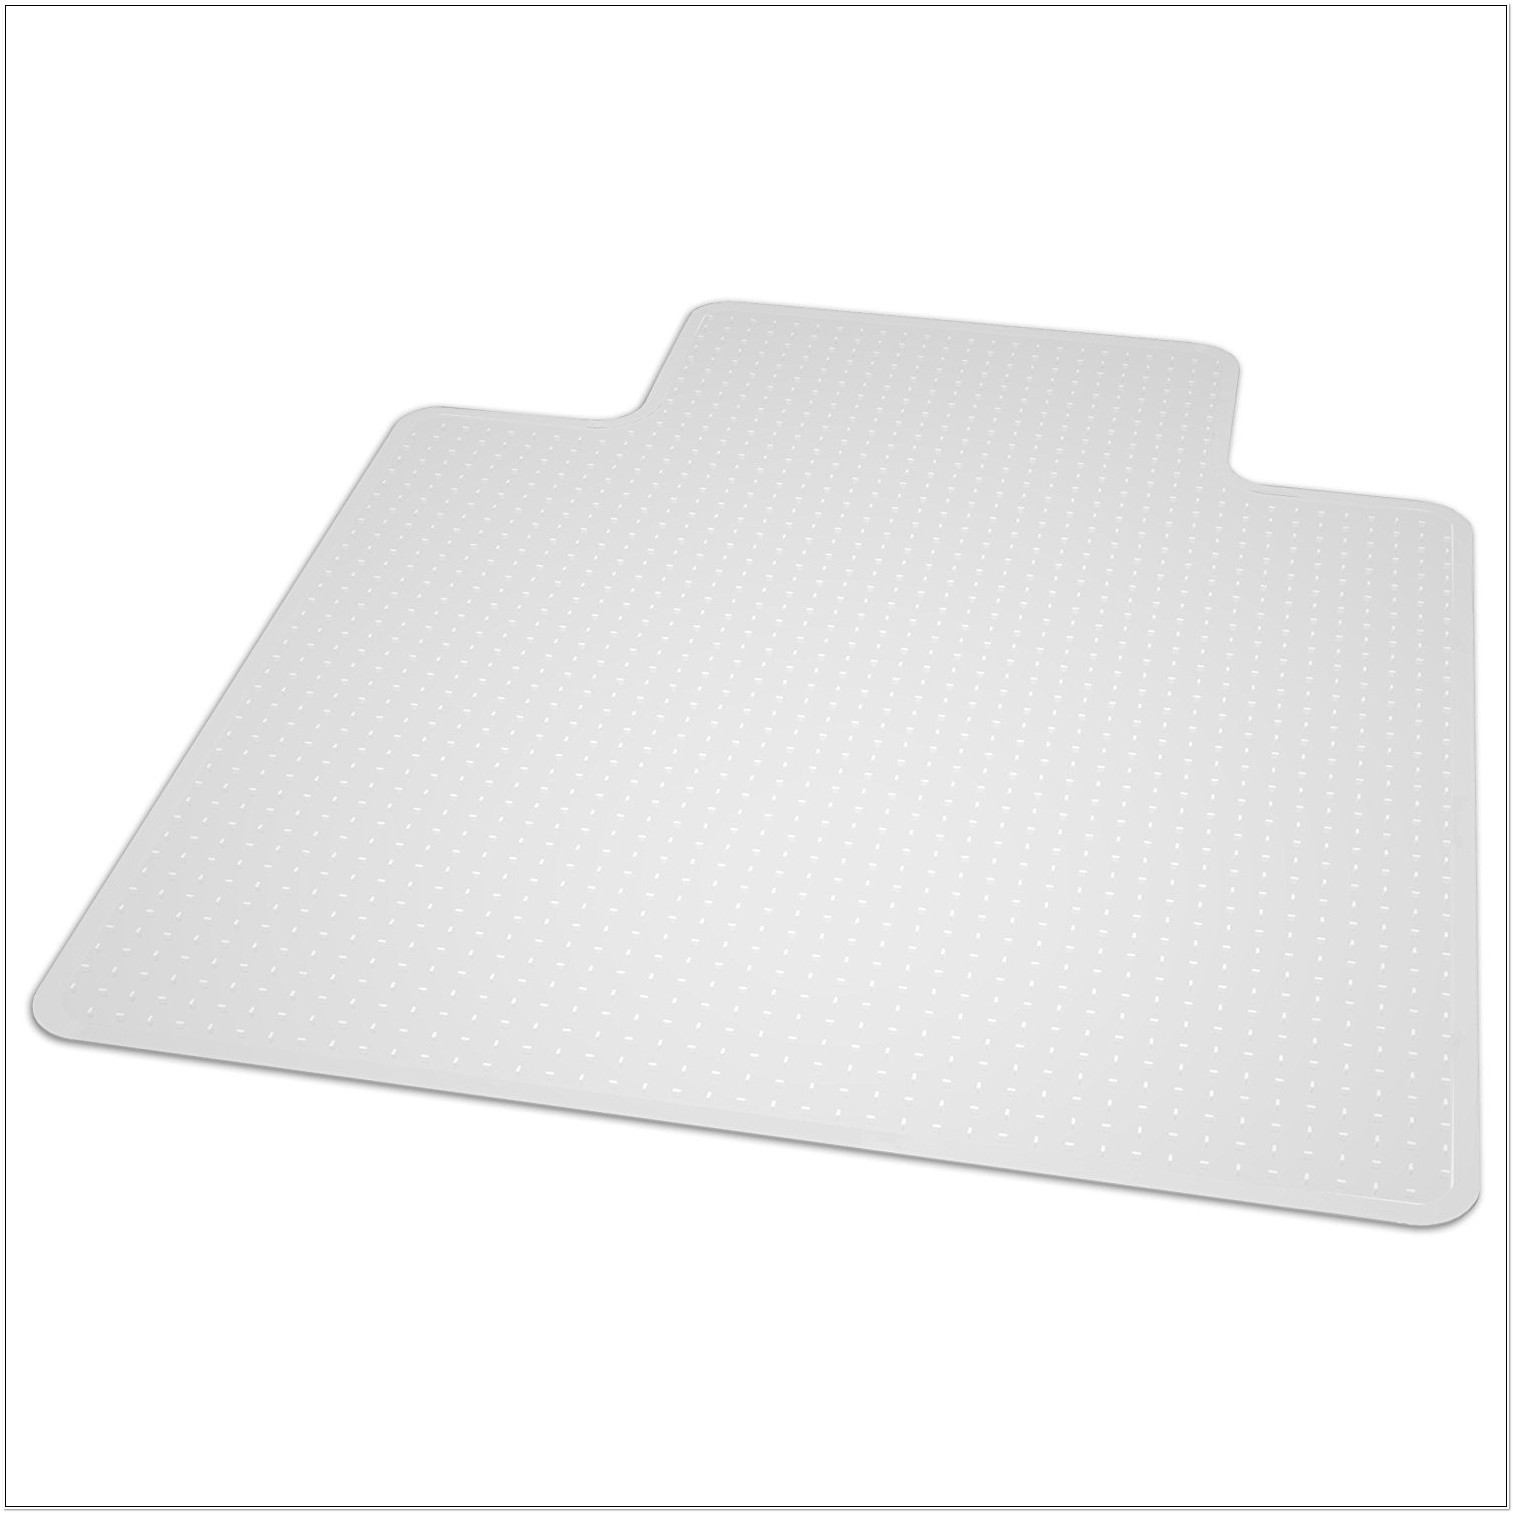 Clear Plastic Mat For Computer Chair